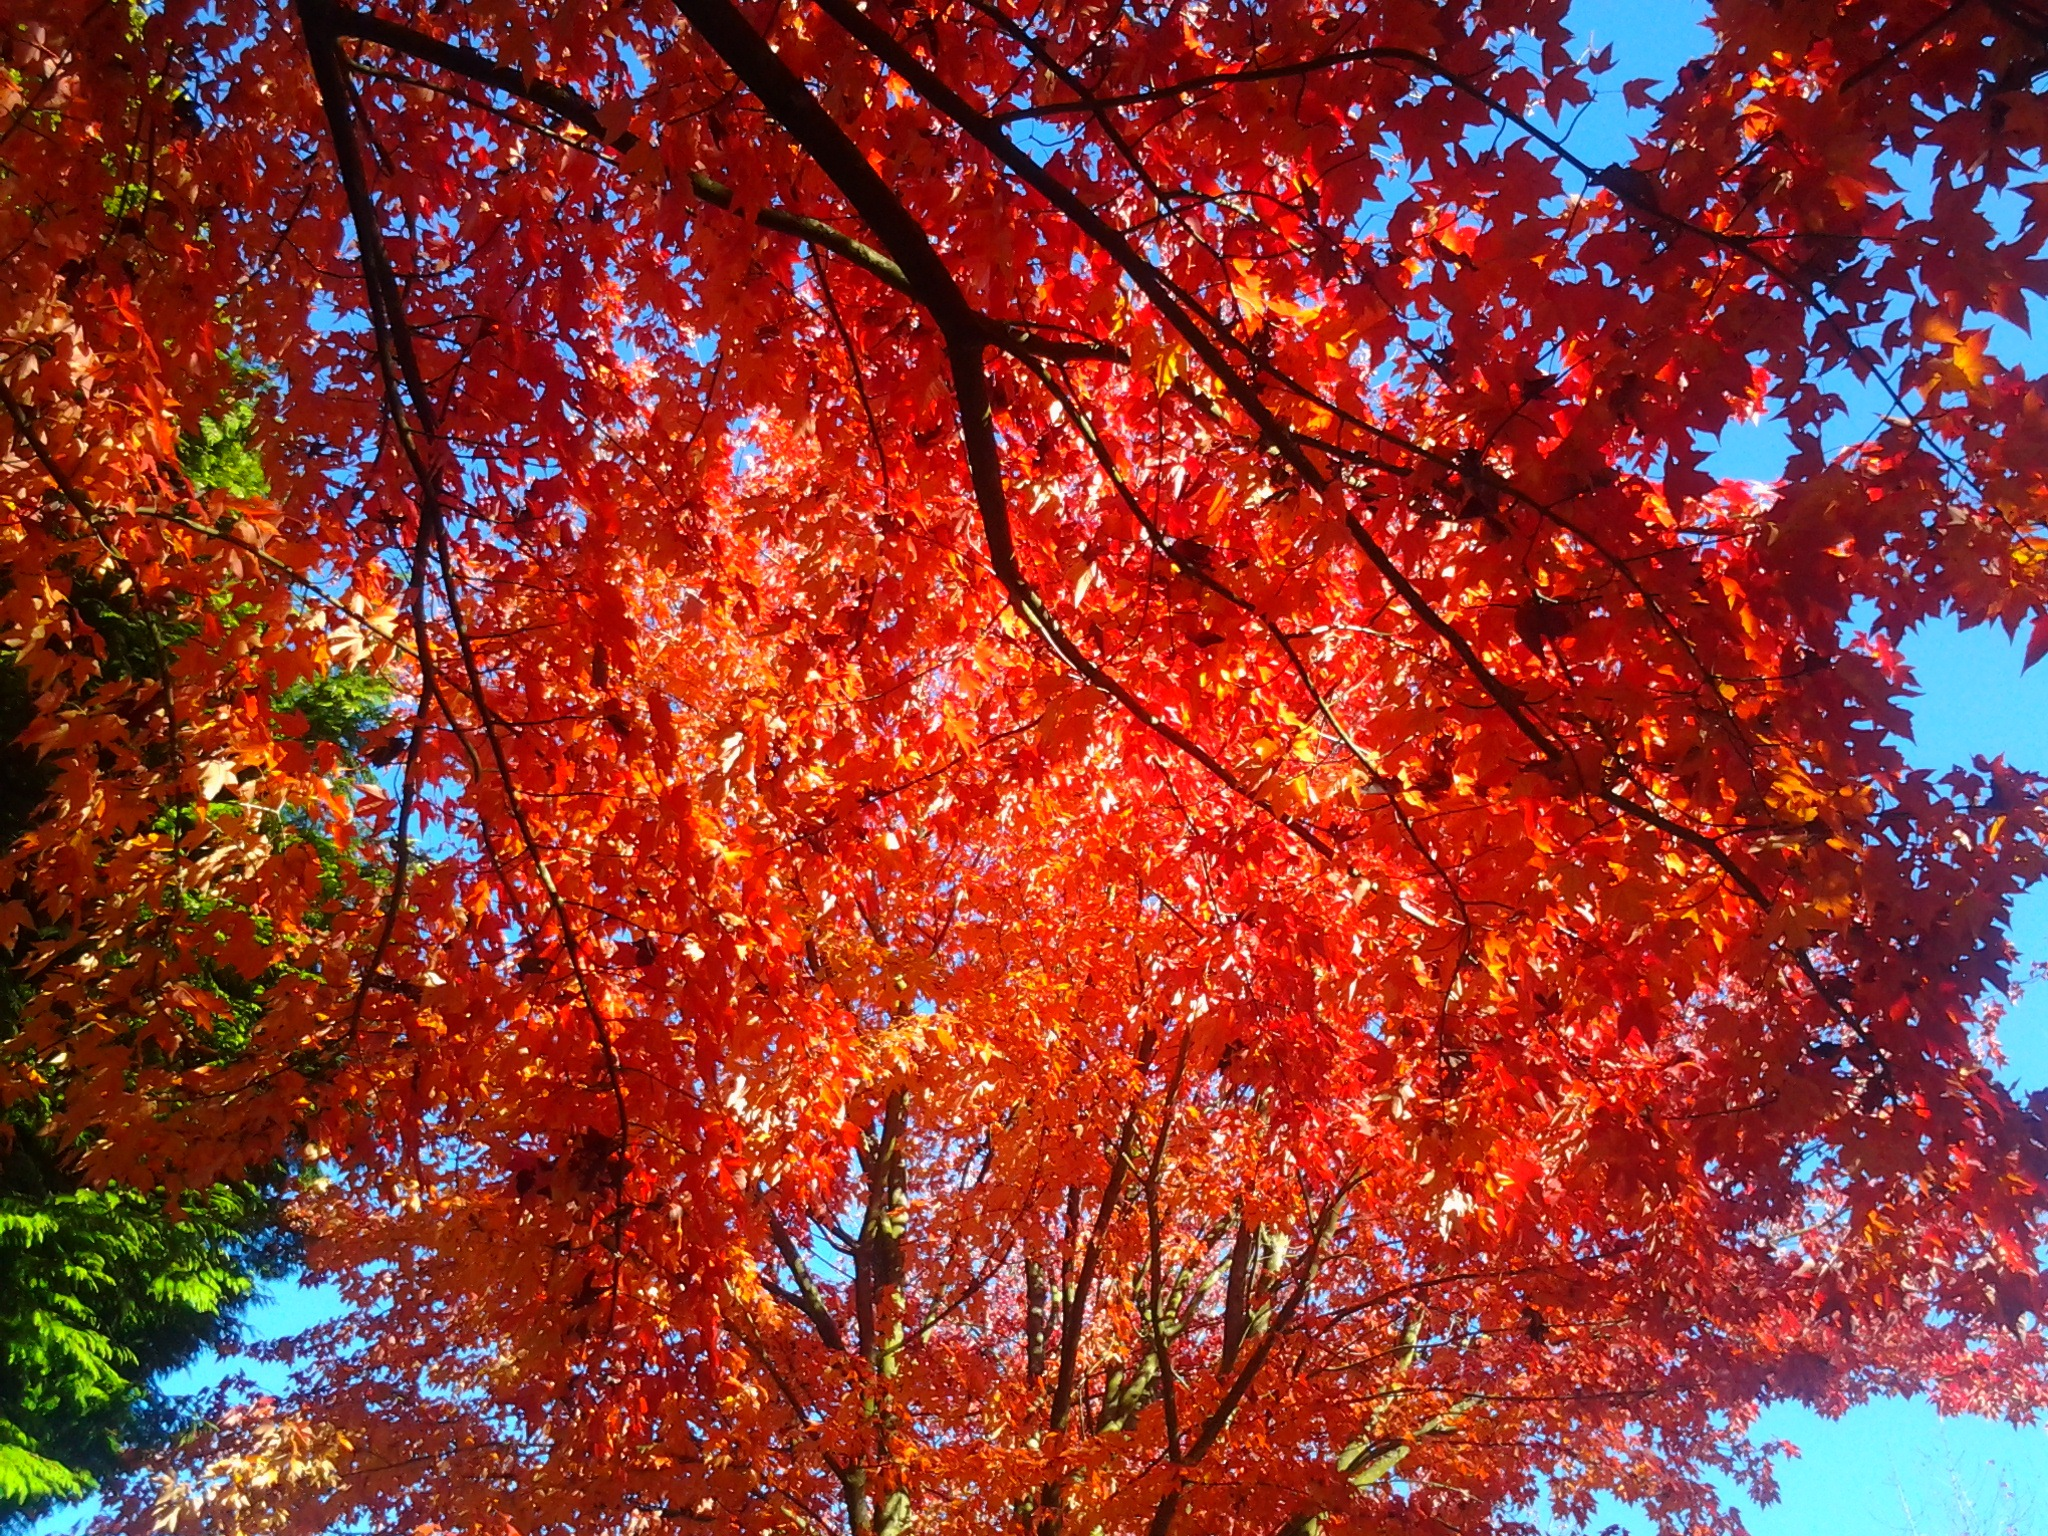 Authum leaves by Alan Hoye